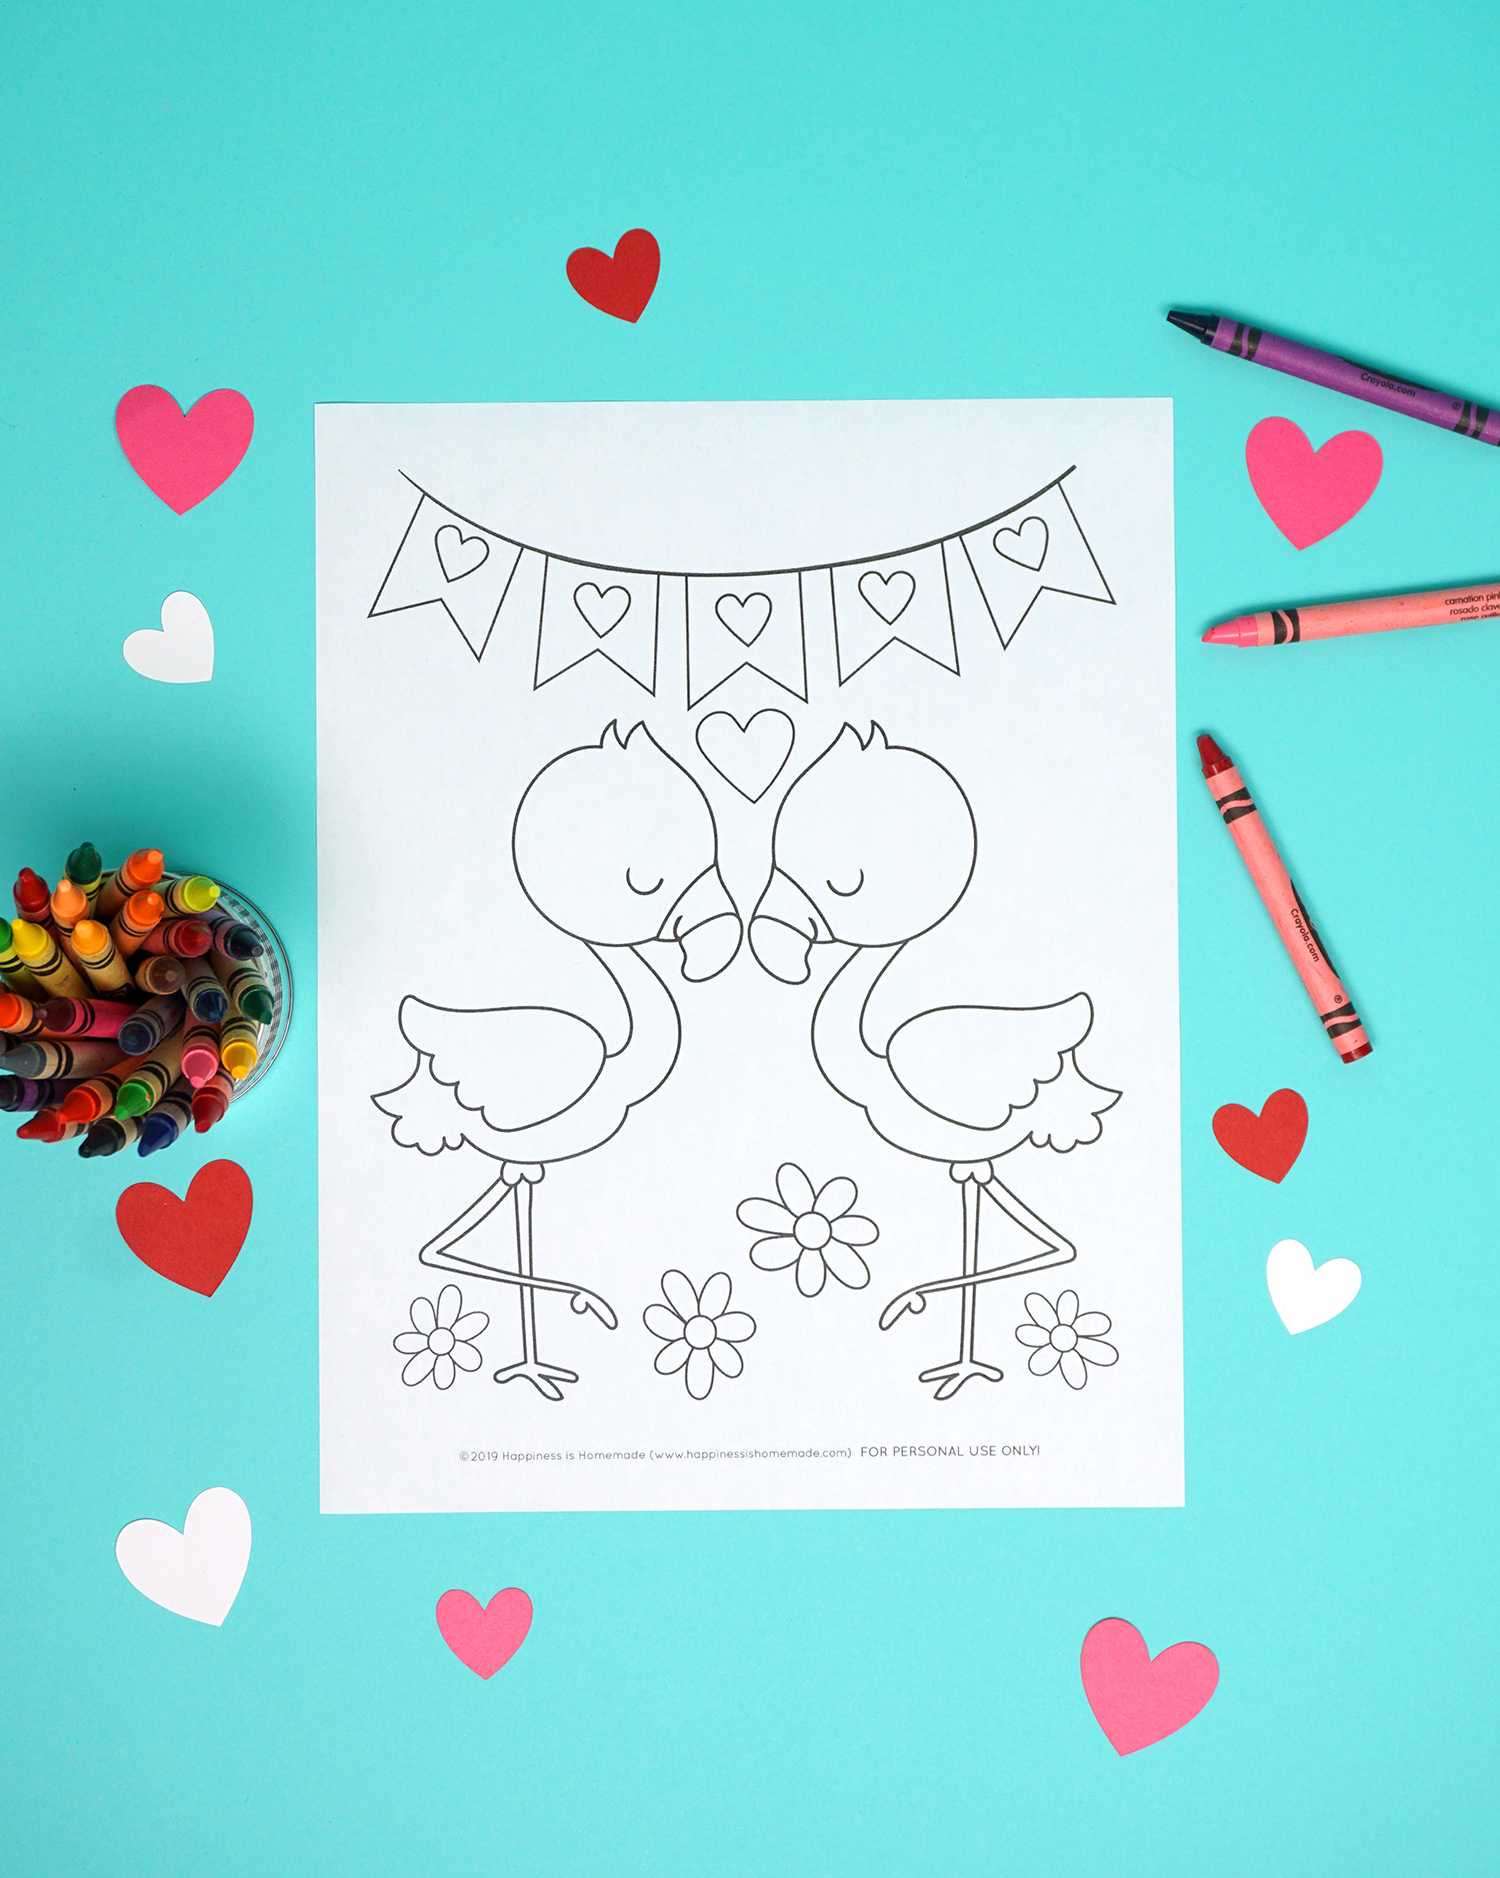 photo regarding Printable Valentine Coloring Page referred to as Printable Valentine Coloring Webpages - Contentment is Selfmade